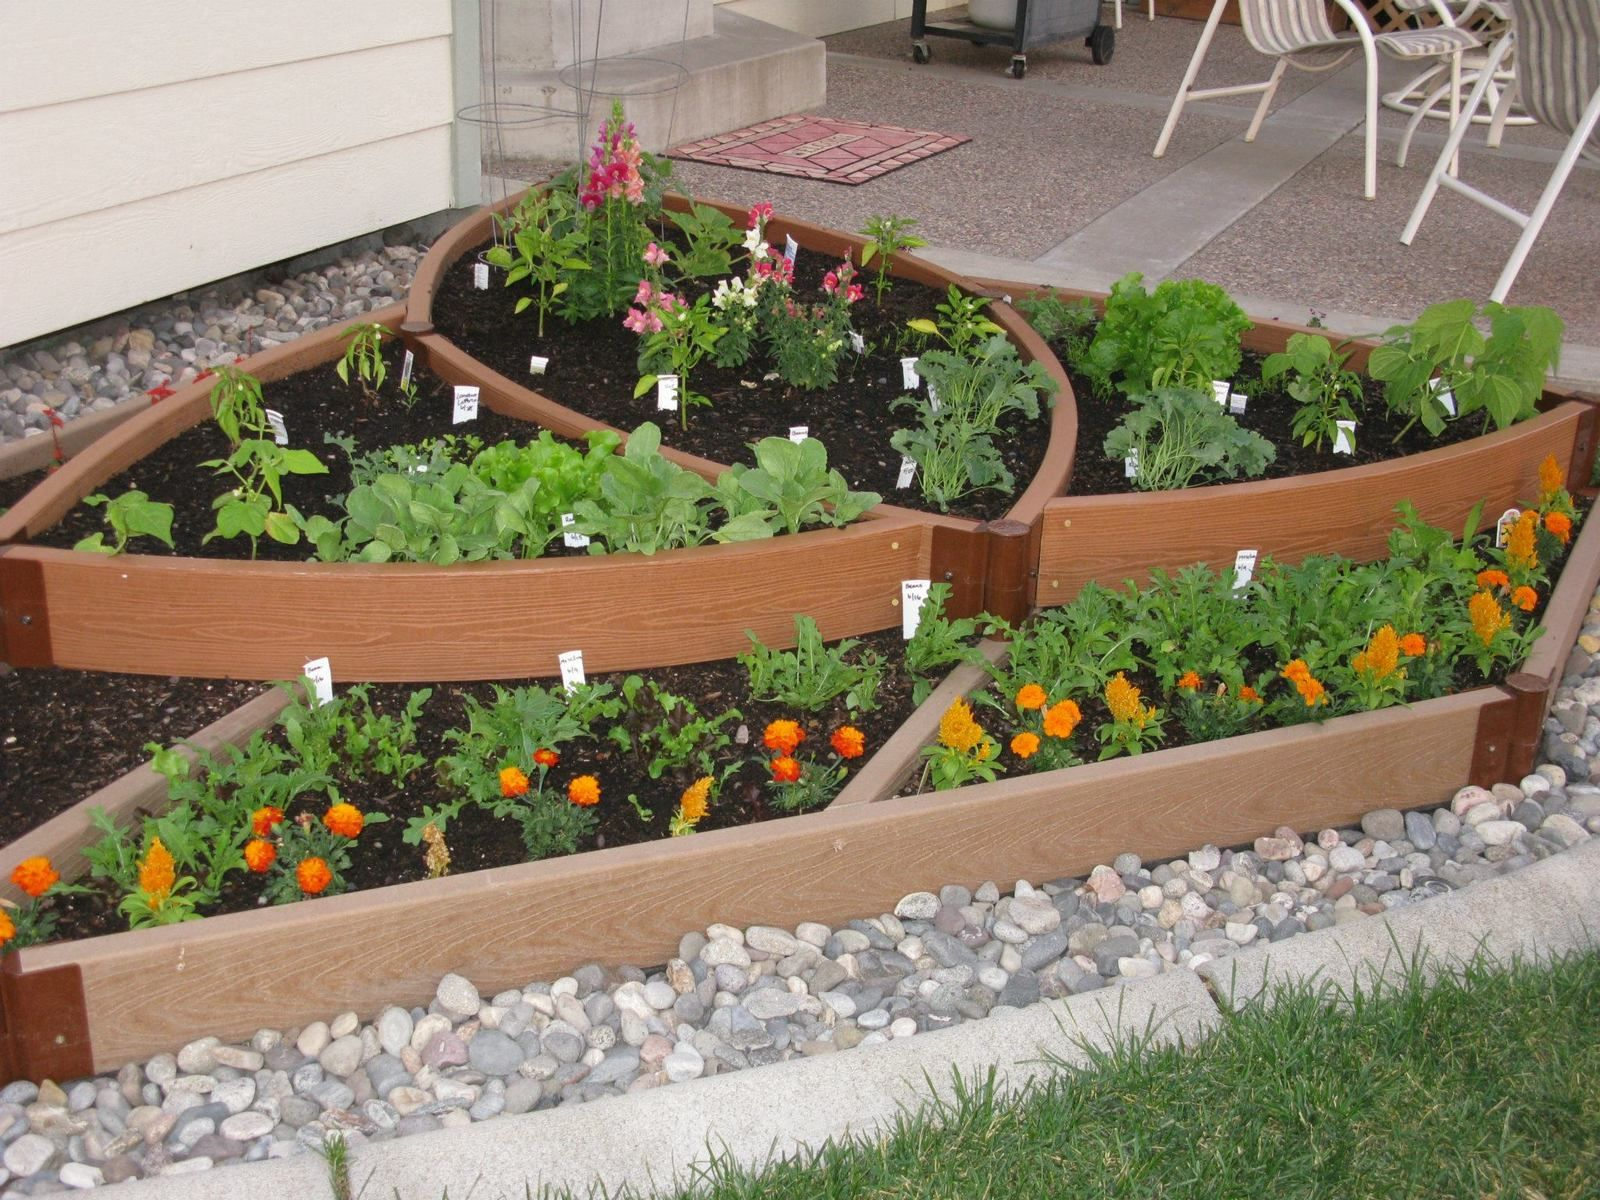 Elevated Garden Bed Designs download now Raised Garden Raised Garden Bed Kits For Sale And Buy Raised